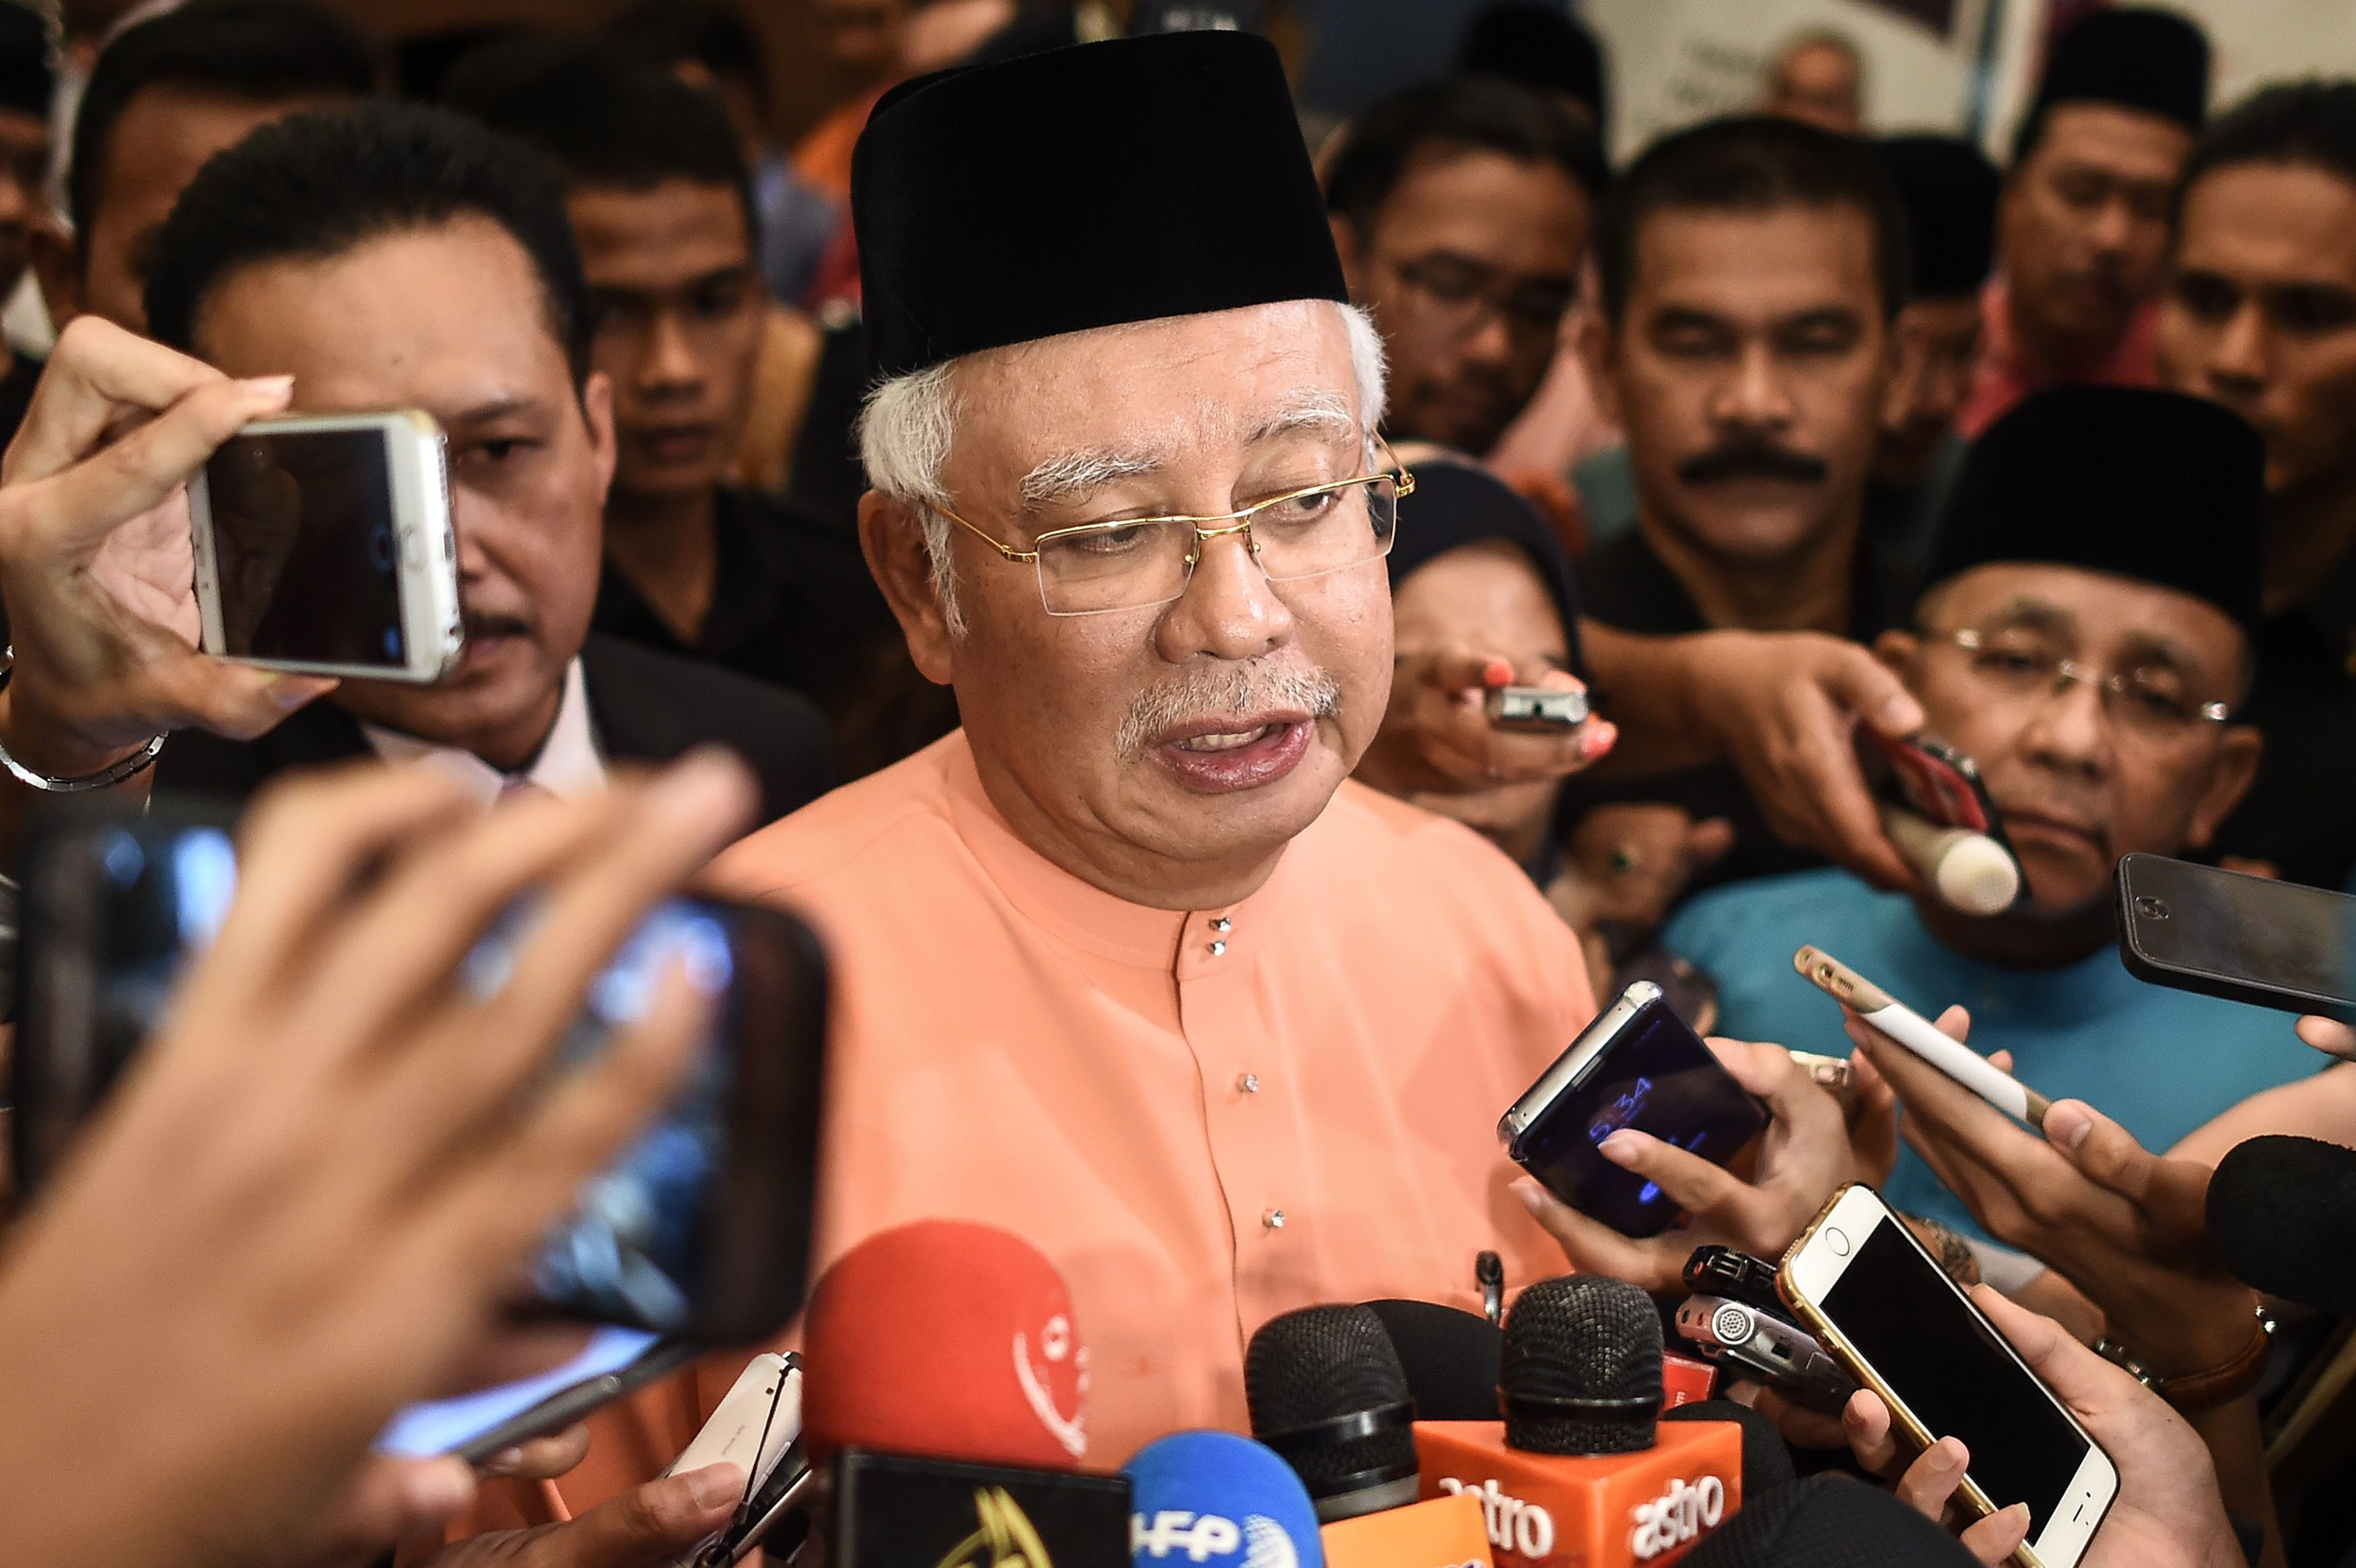 Malaysia's Prime Minister Najib Razak speaks to members of the media after an event in Kuala Lumpur on July 21, 2016